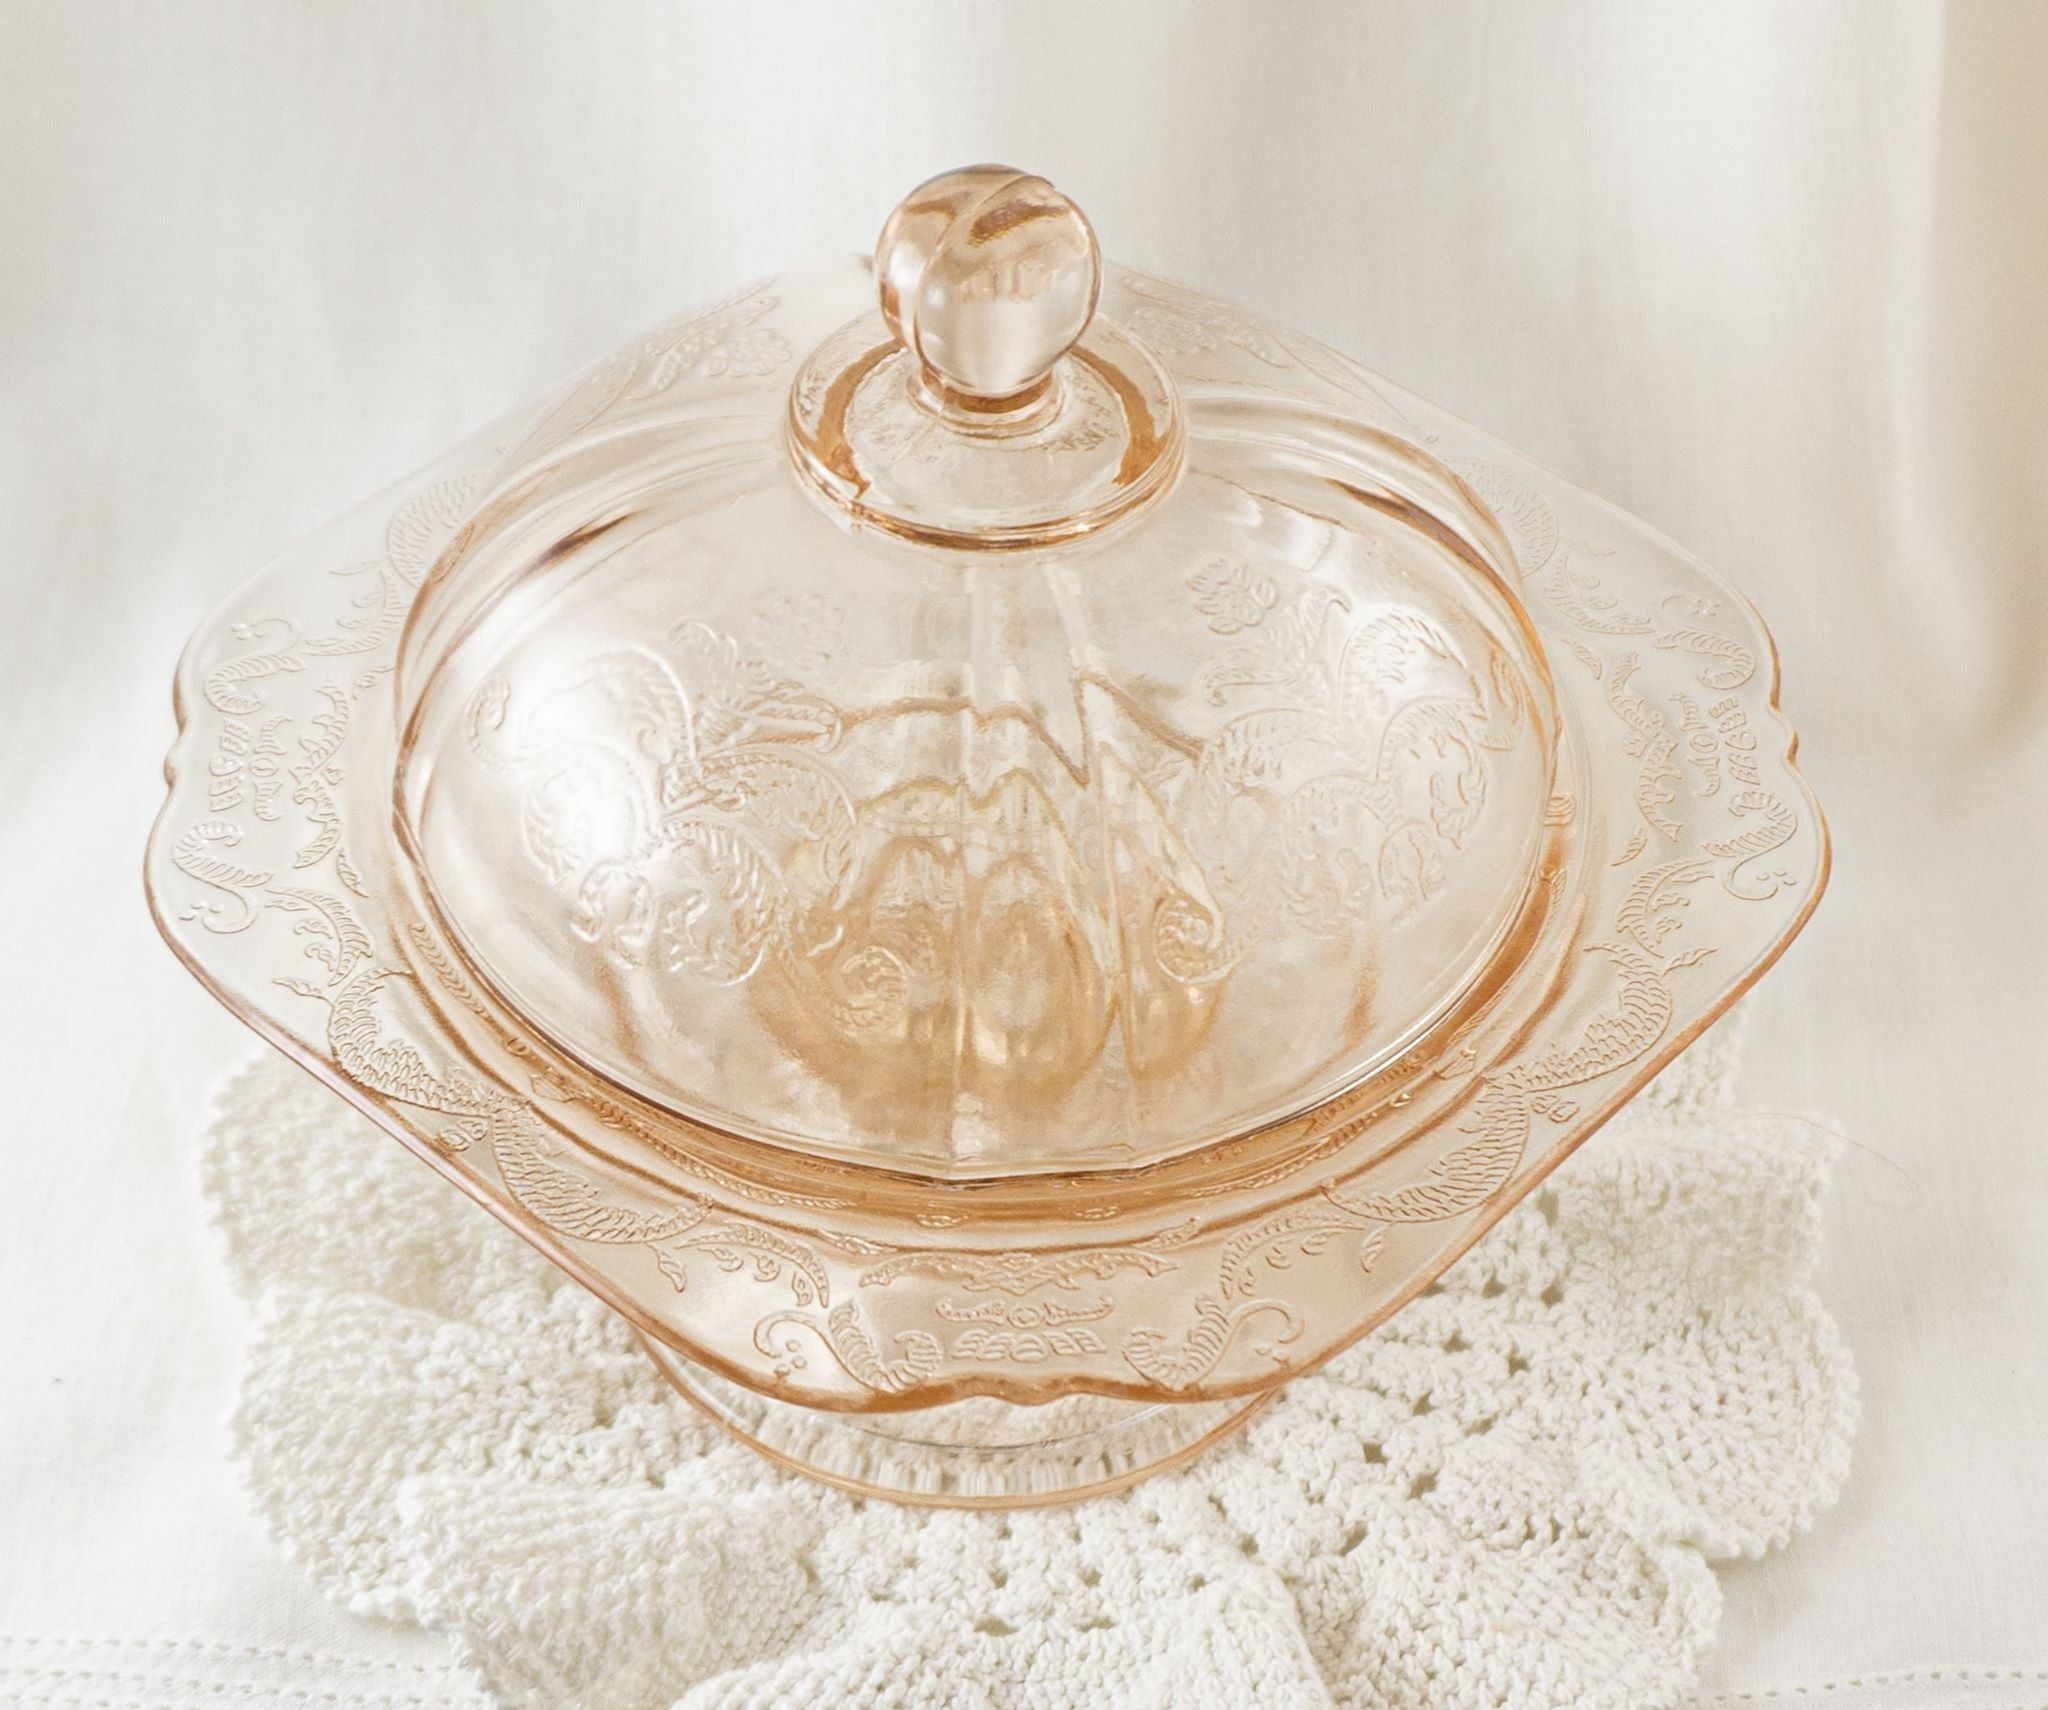 Footed Covered Candy Dish in Recollection Pink by INDIANA GLASS